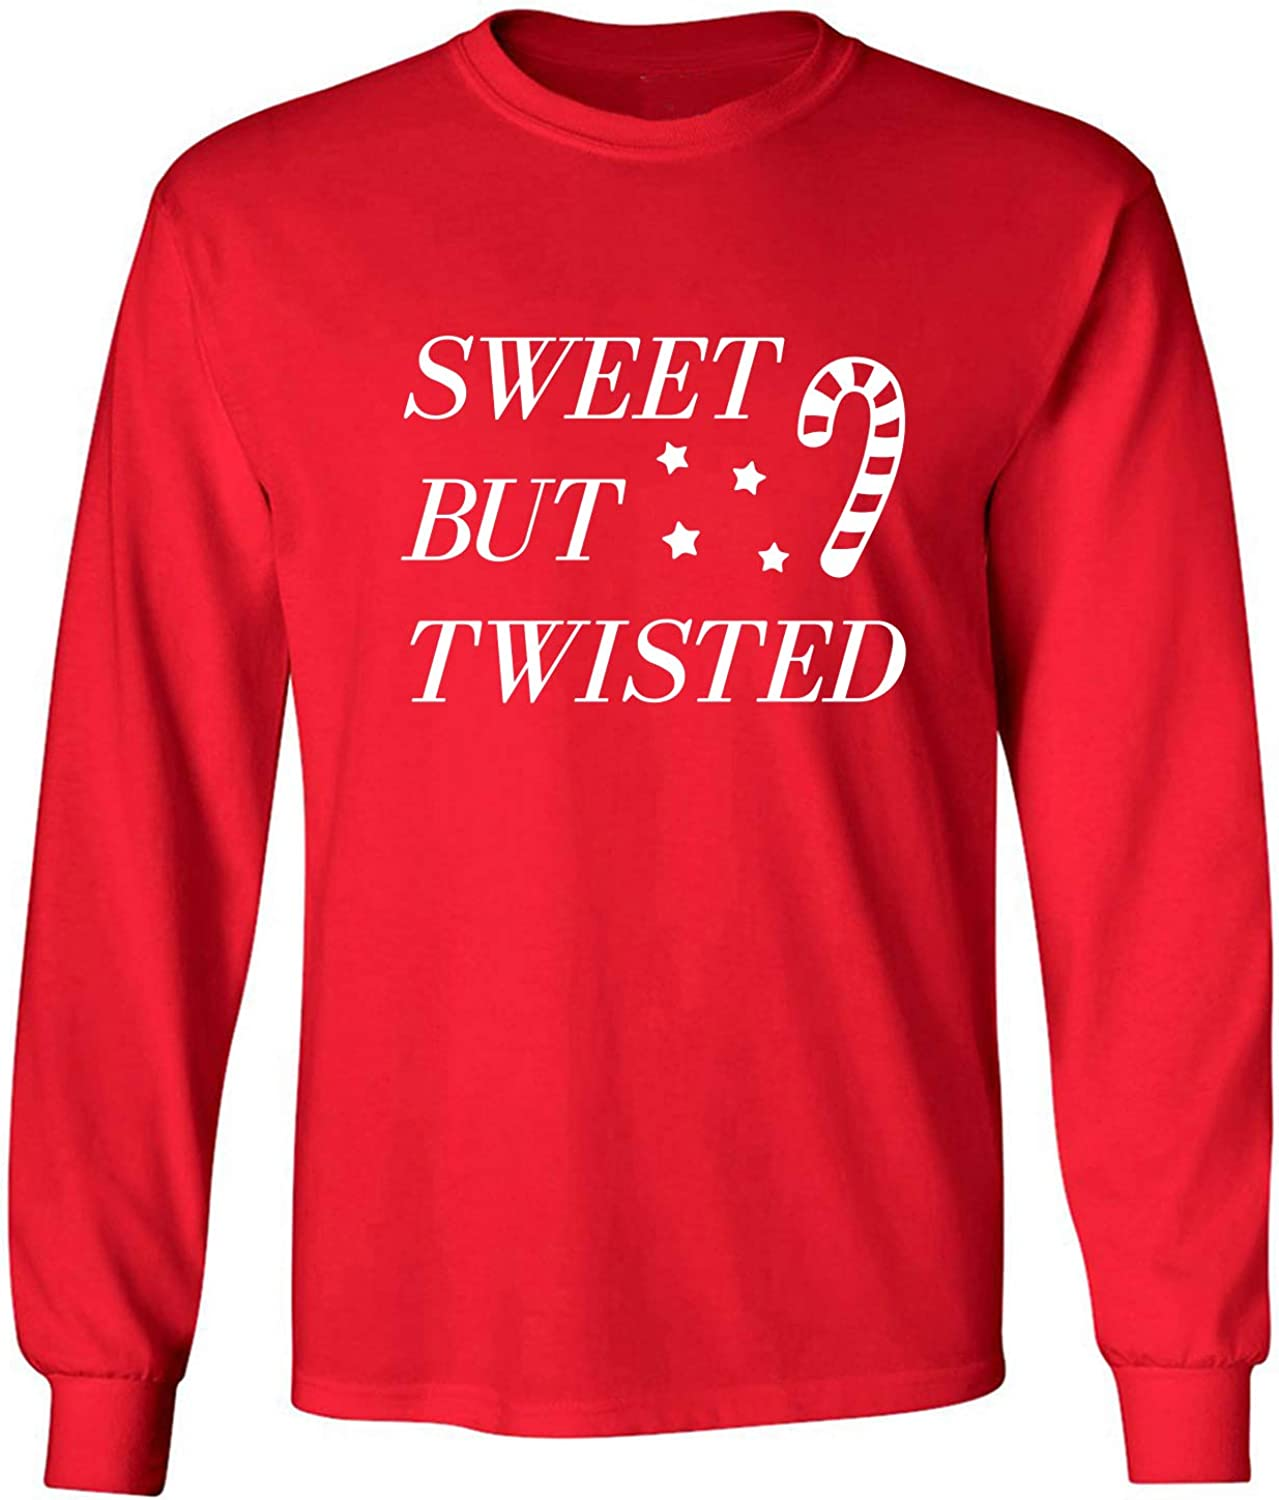 Sweet But Twisted Adult Long Sleeve T-Shirt in Red - XXX-Large